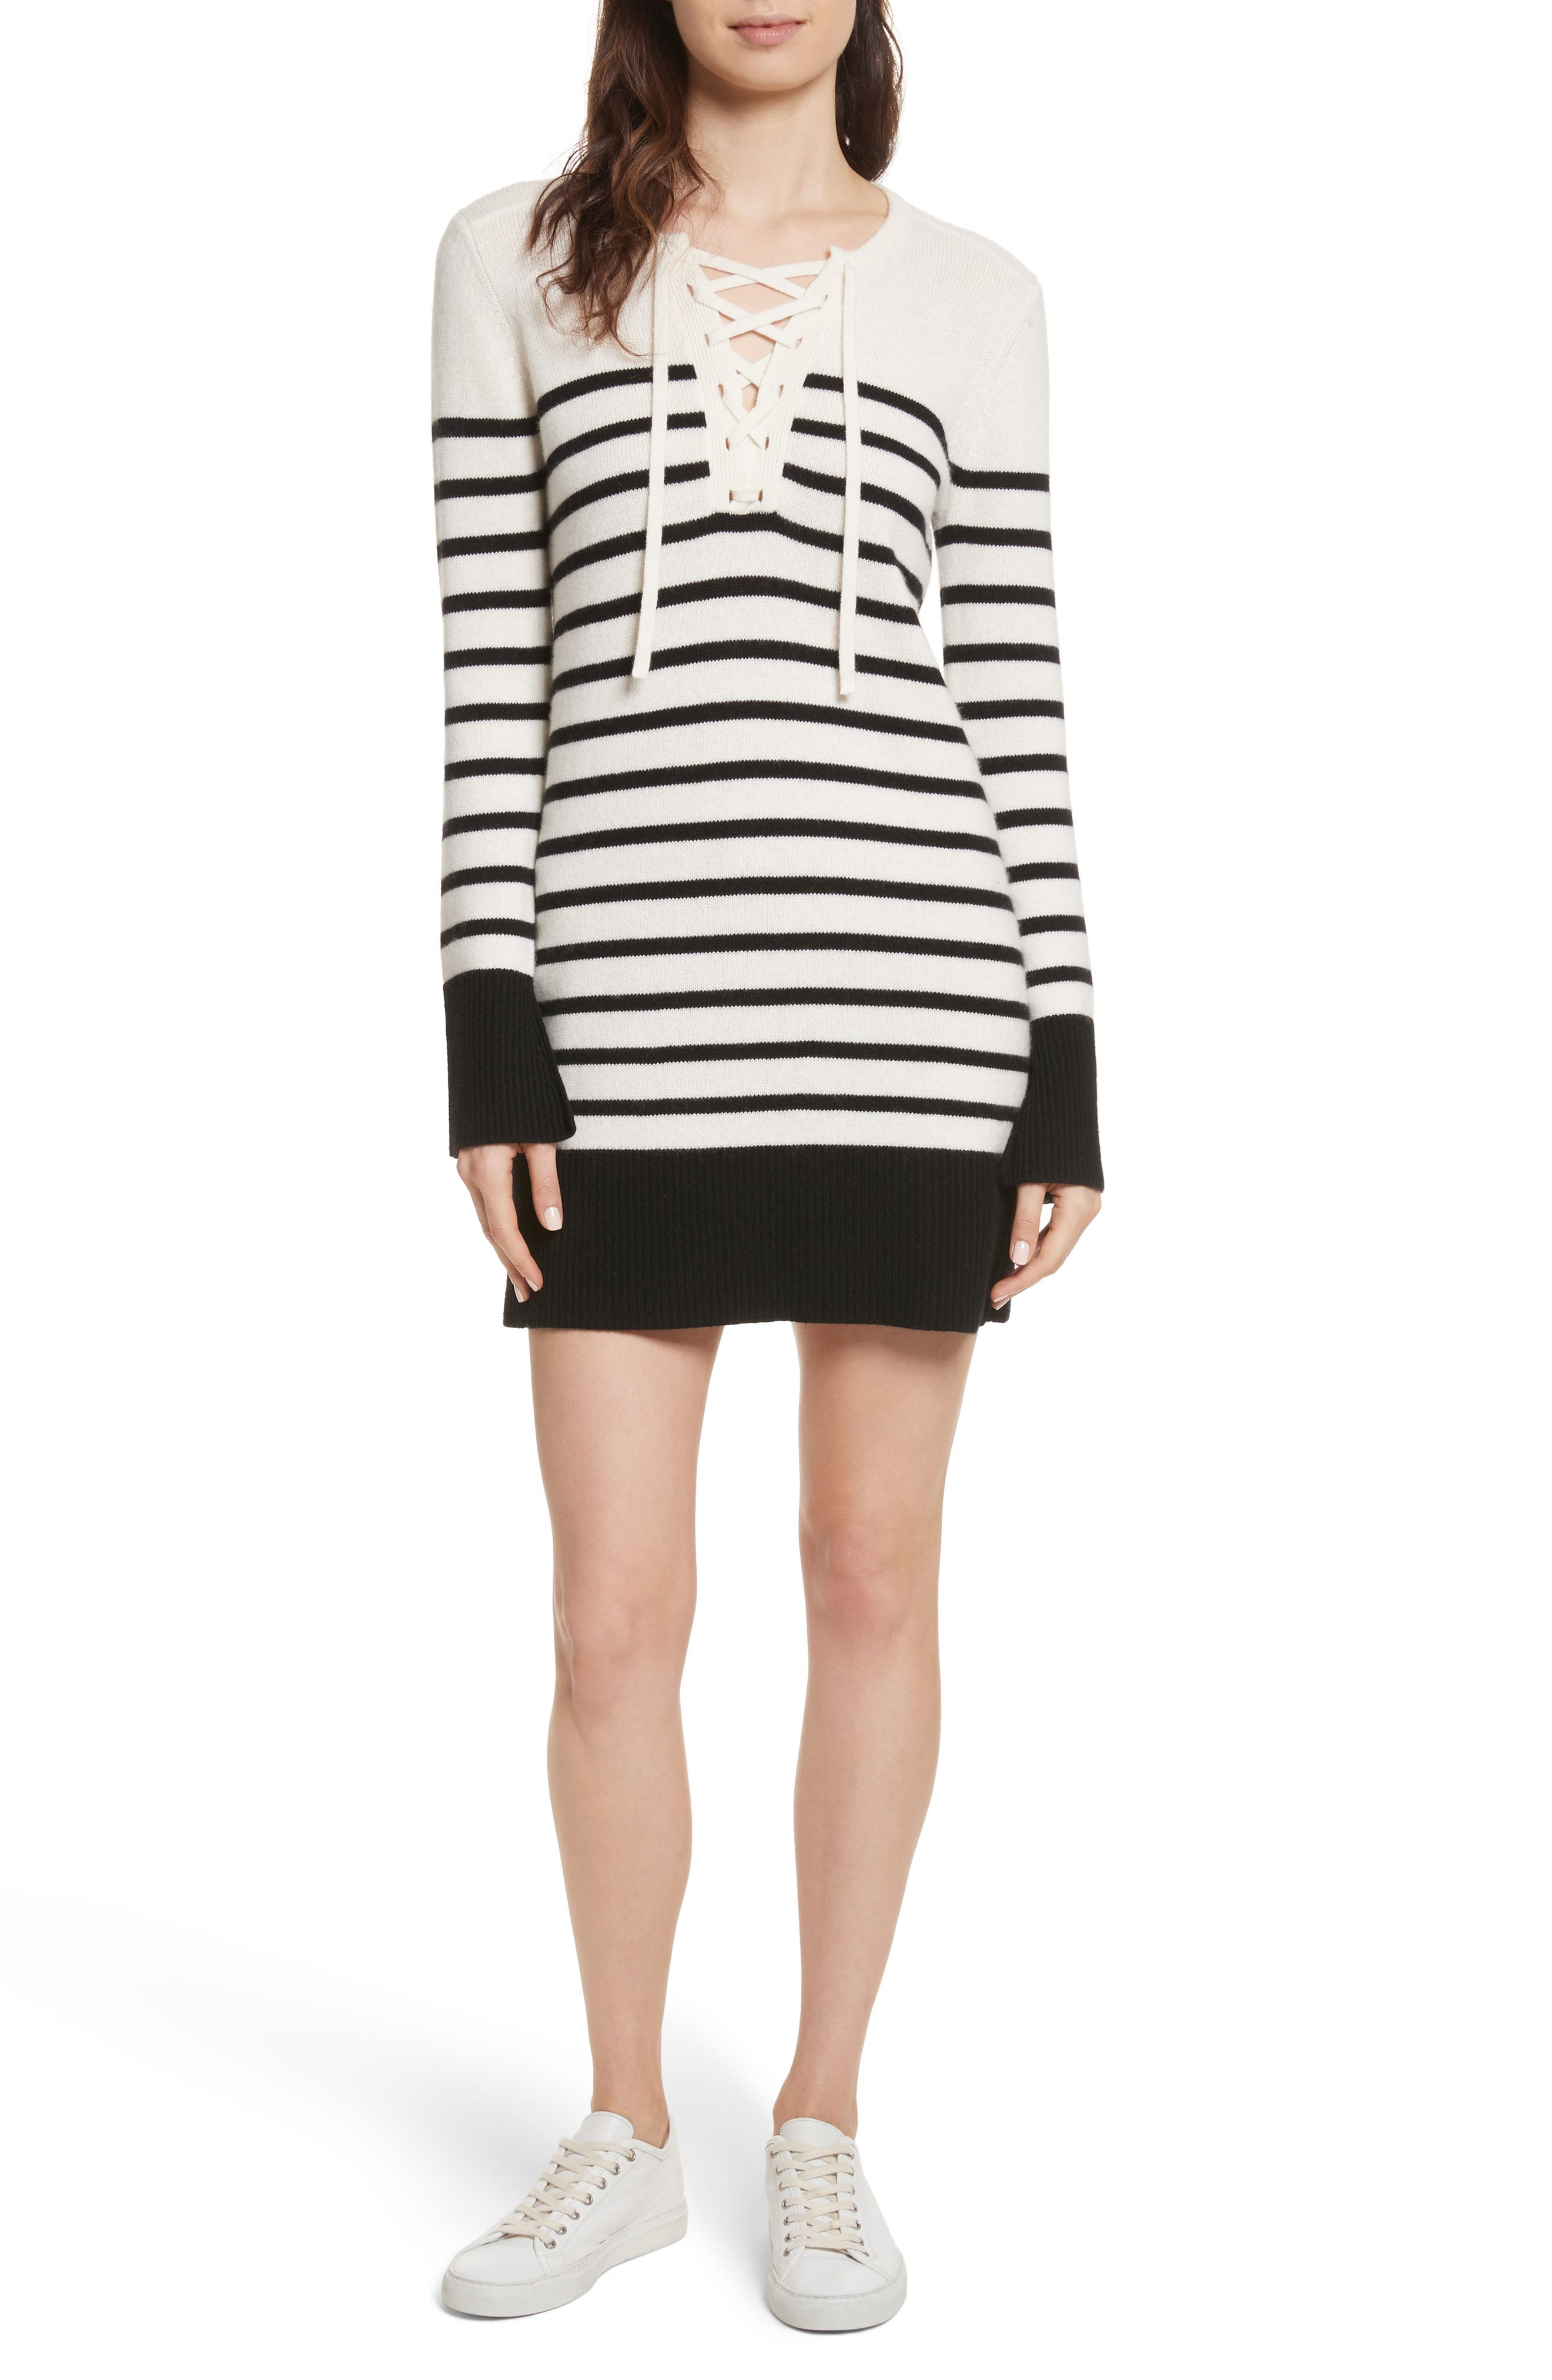 Main Image - Joie Heltan Wool & Cashmere Sweater Dress